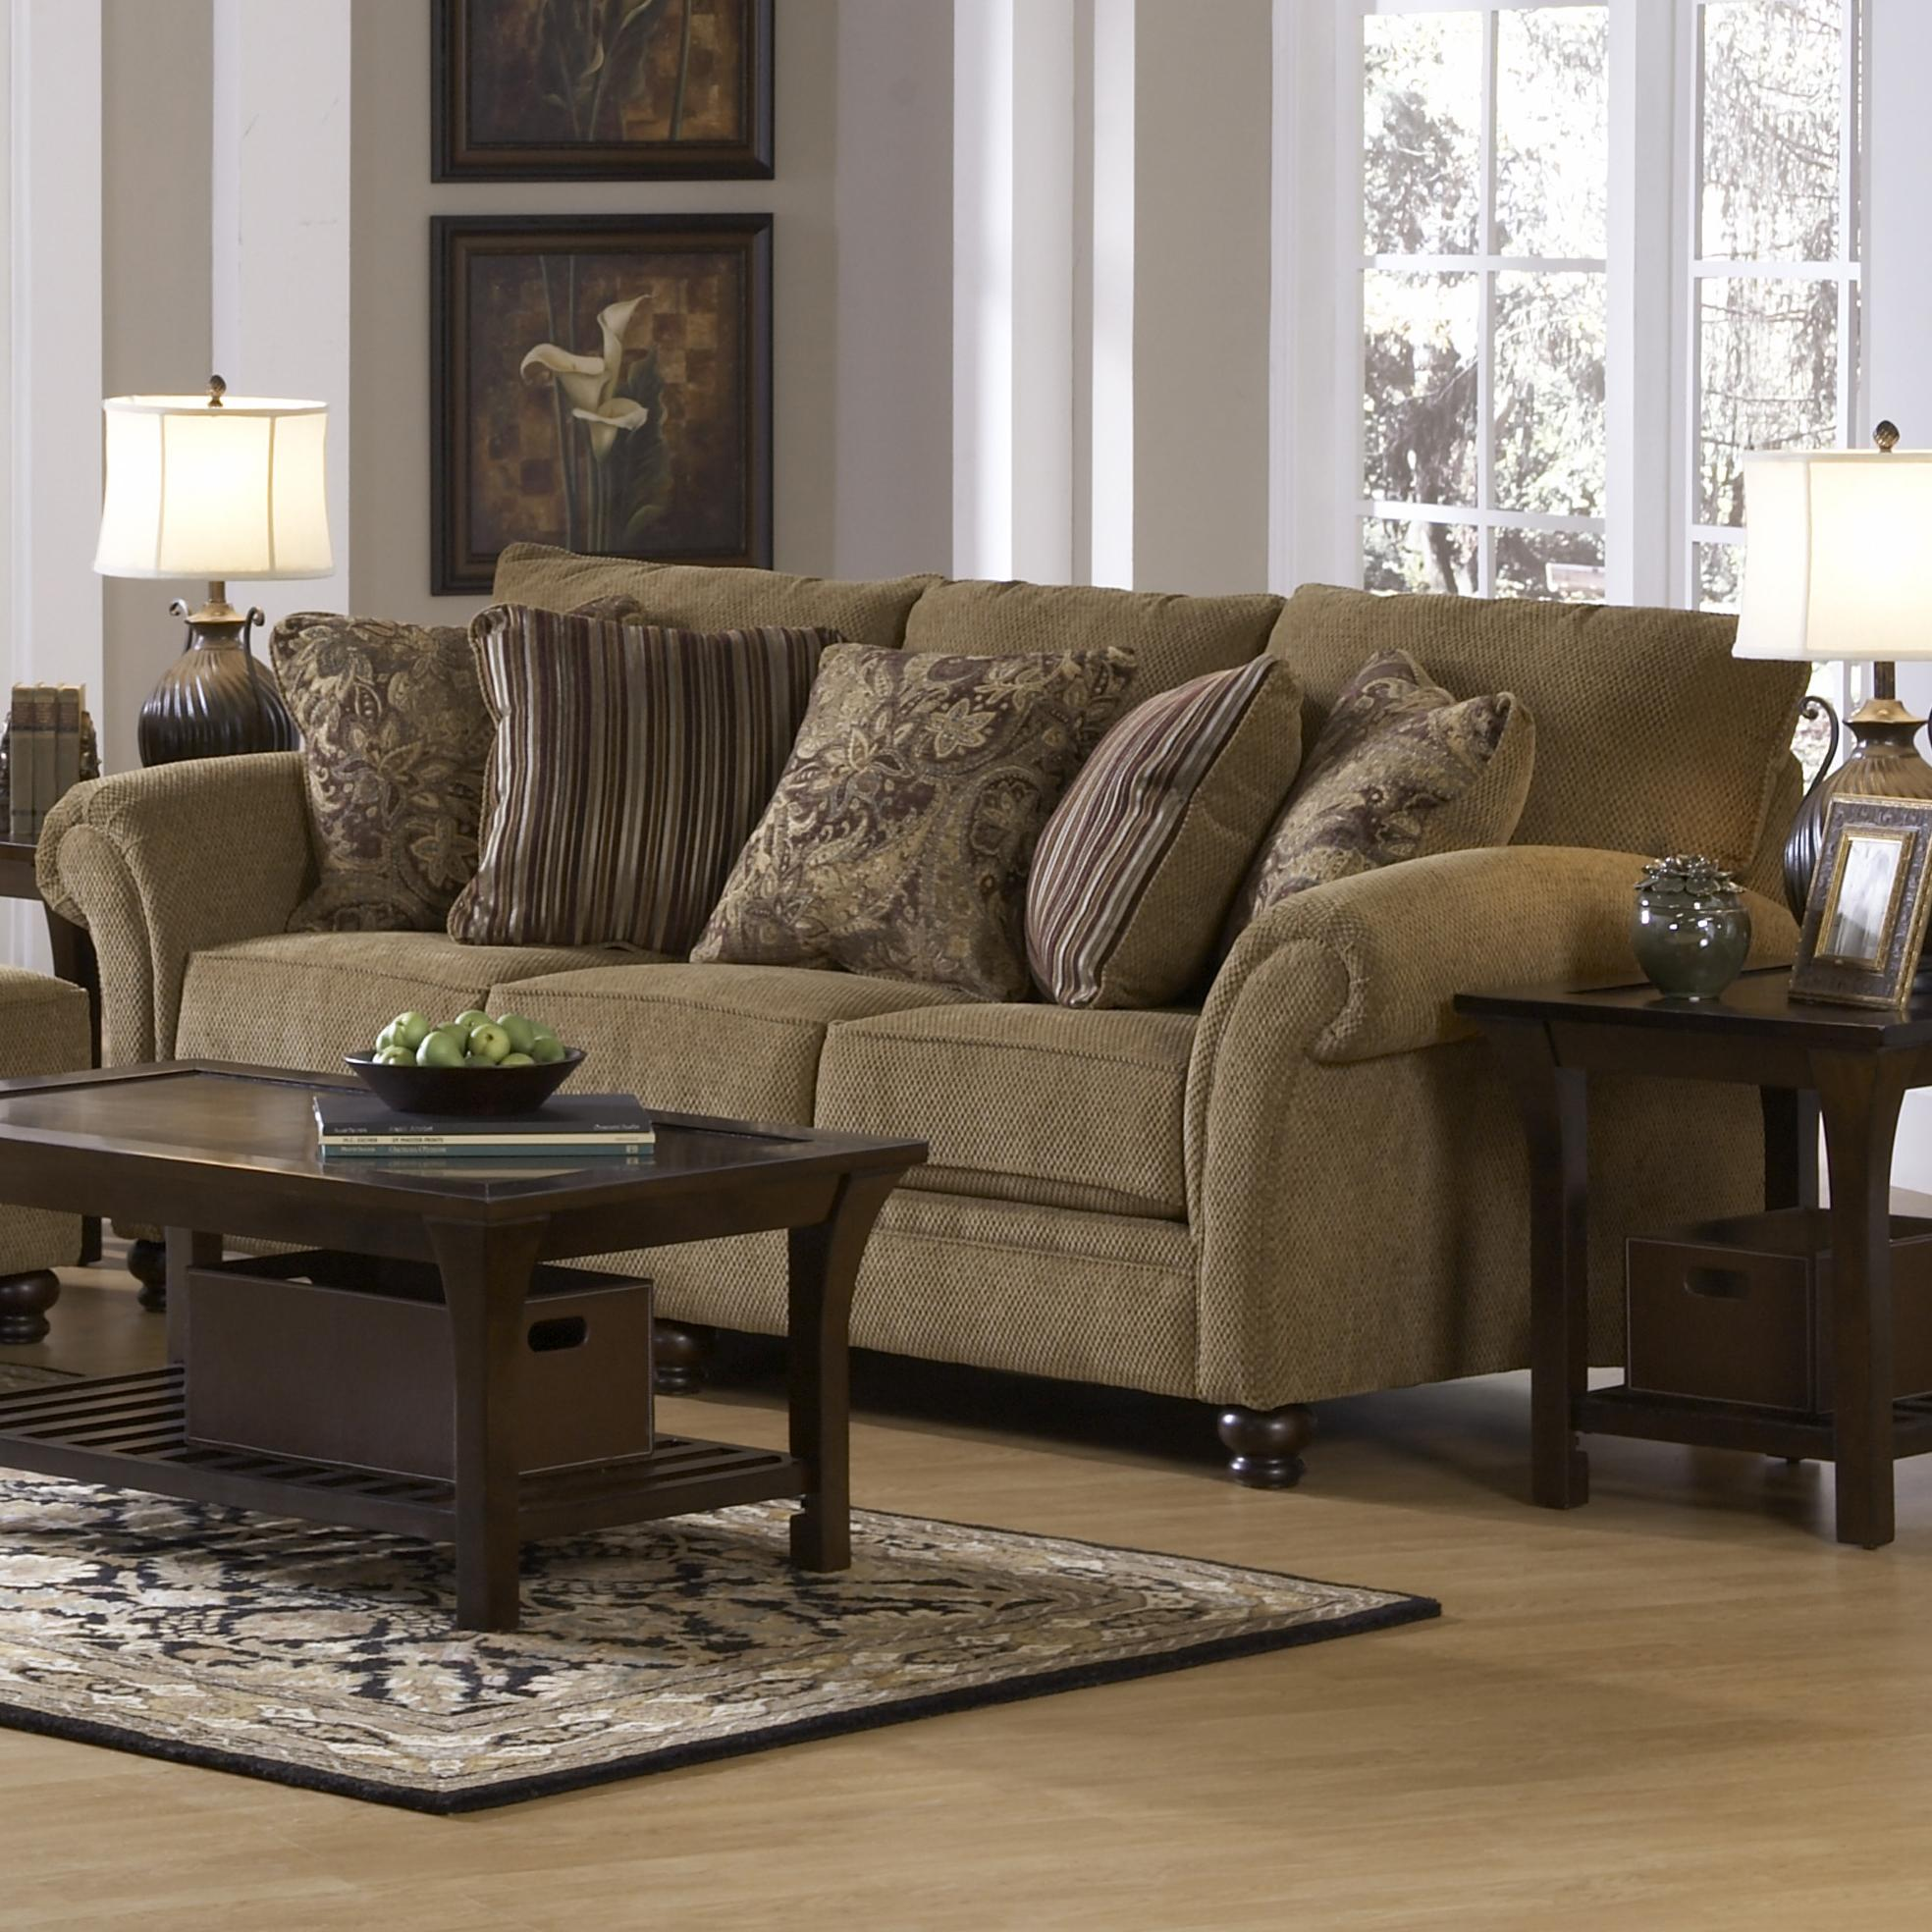 Jackson Furniture Suffolk Traditional Styled Sofa with